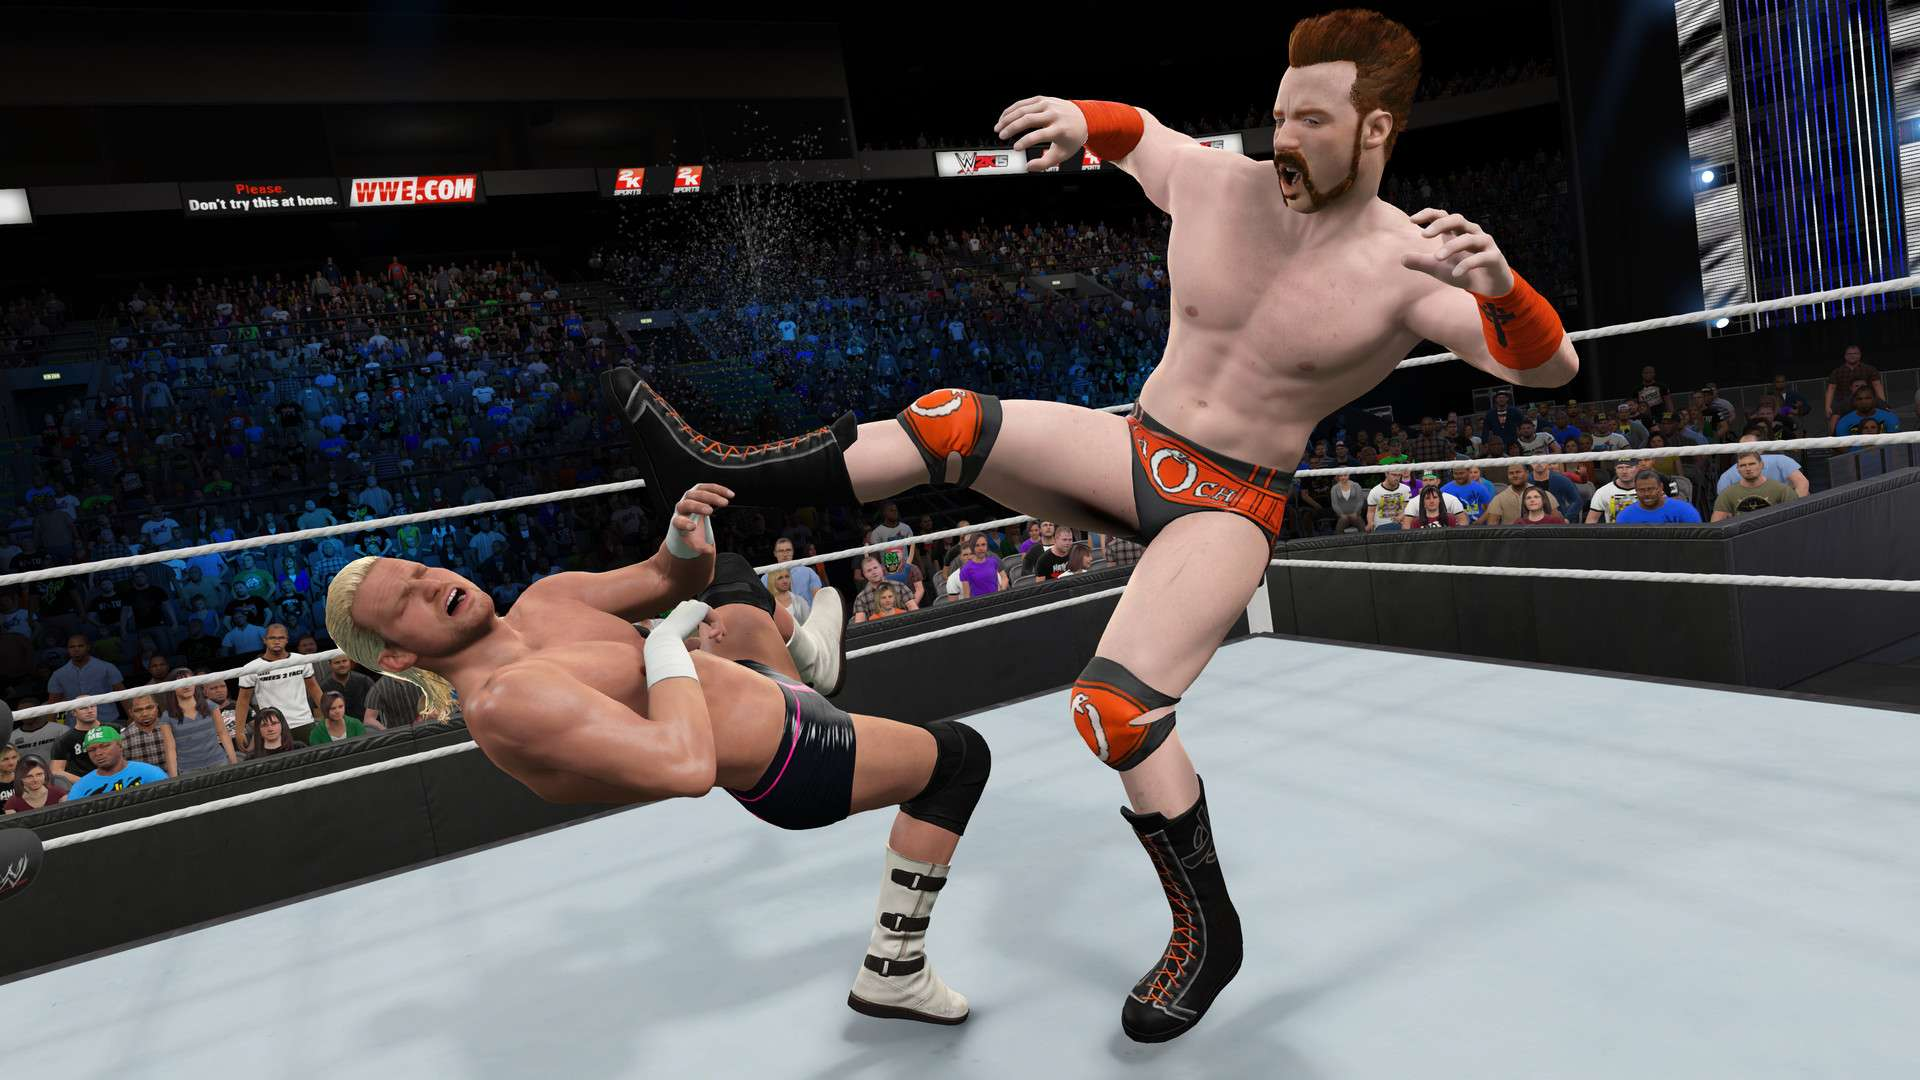 WWE 2K15 (Steam Gift ROW / Region Free)